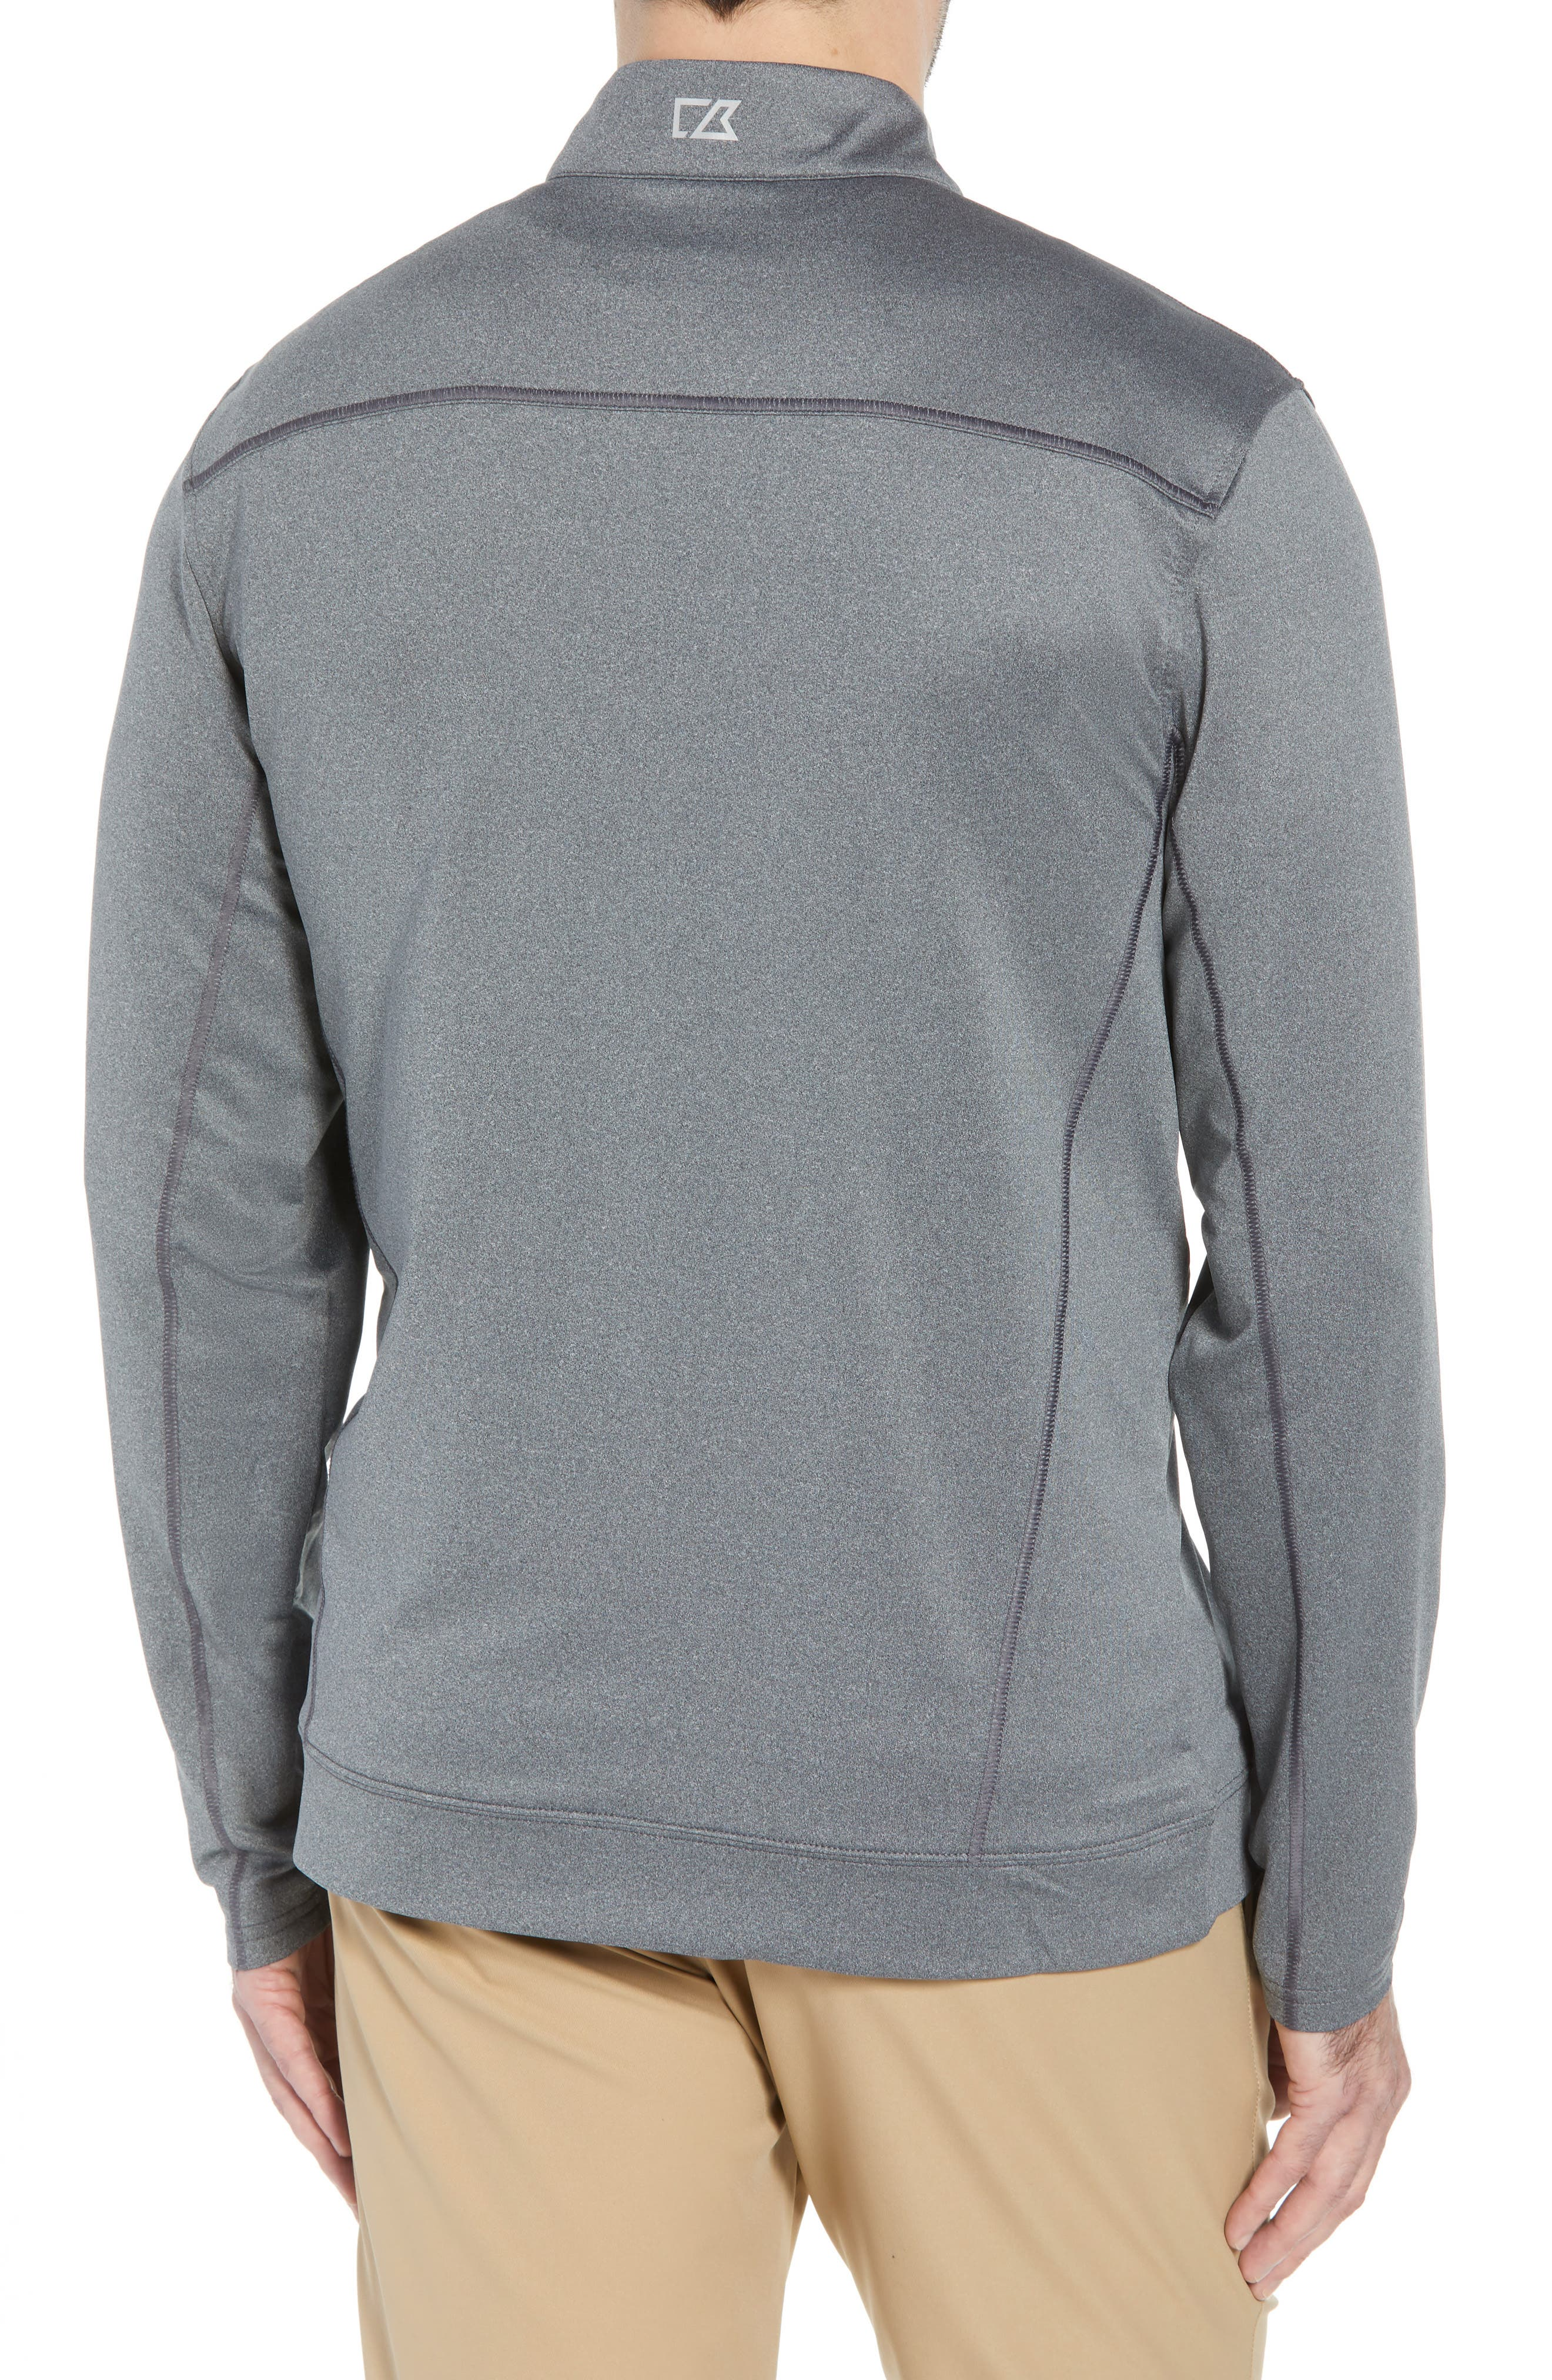 Endurance Detroit Lions Regular Fit Pullover,                             Alternate thumbnail 2, color,                             CHARCOAL HEATHER